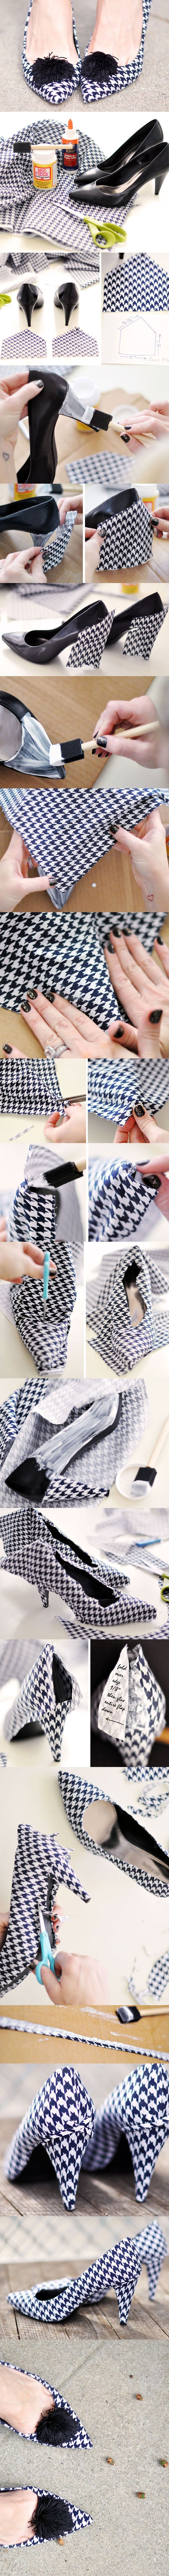 DIY: Designer Shoes Project-houndstooth